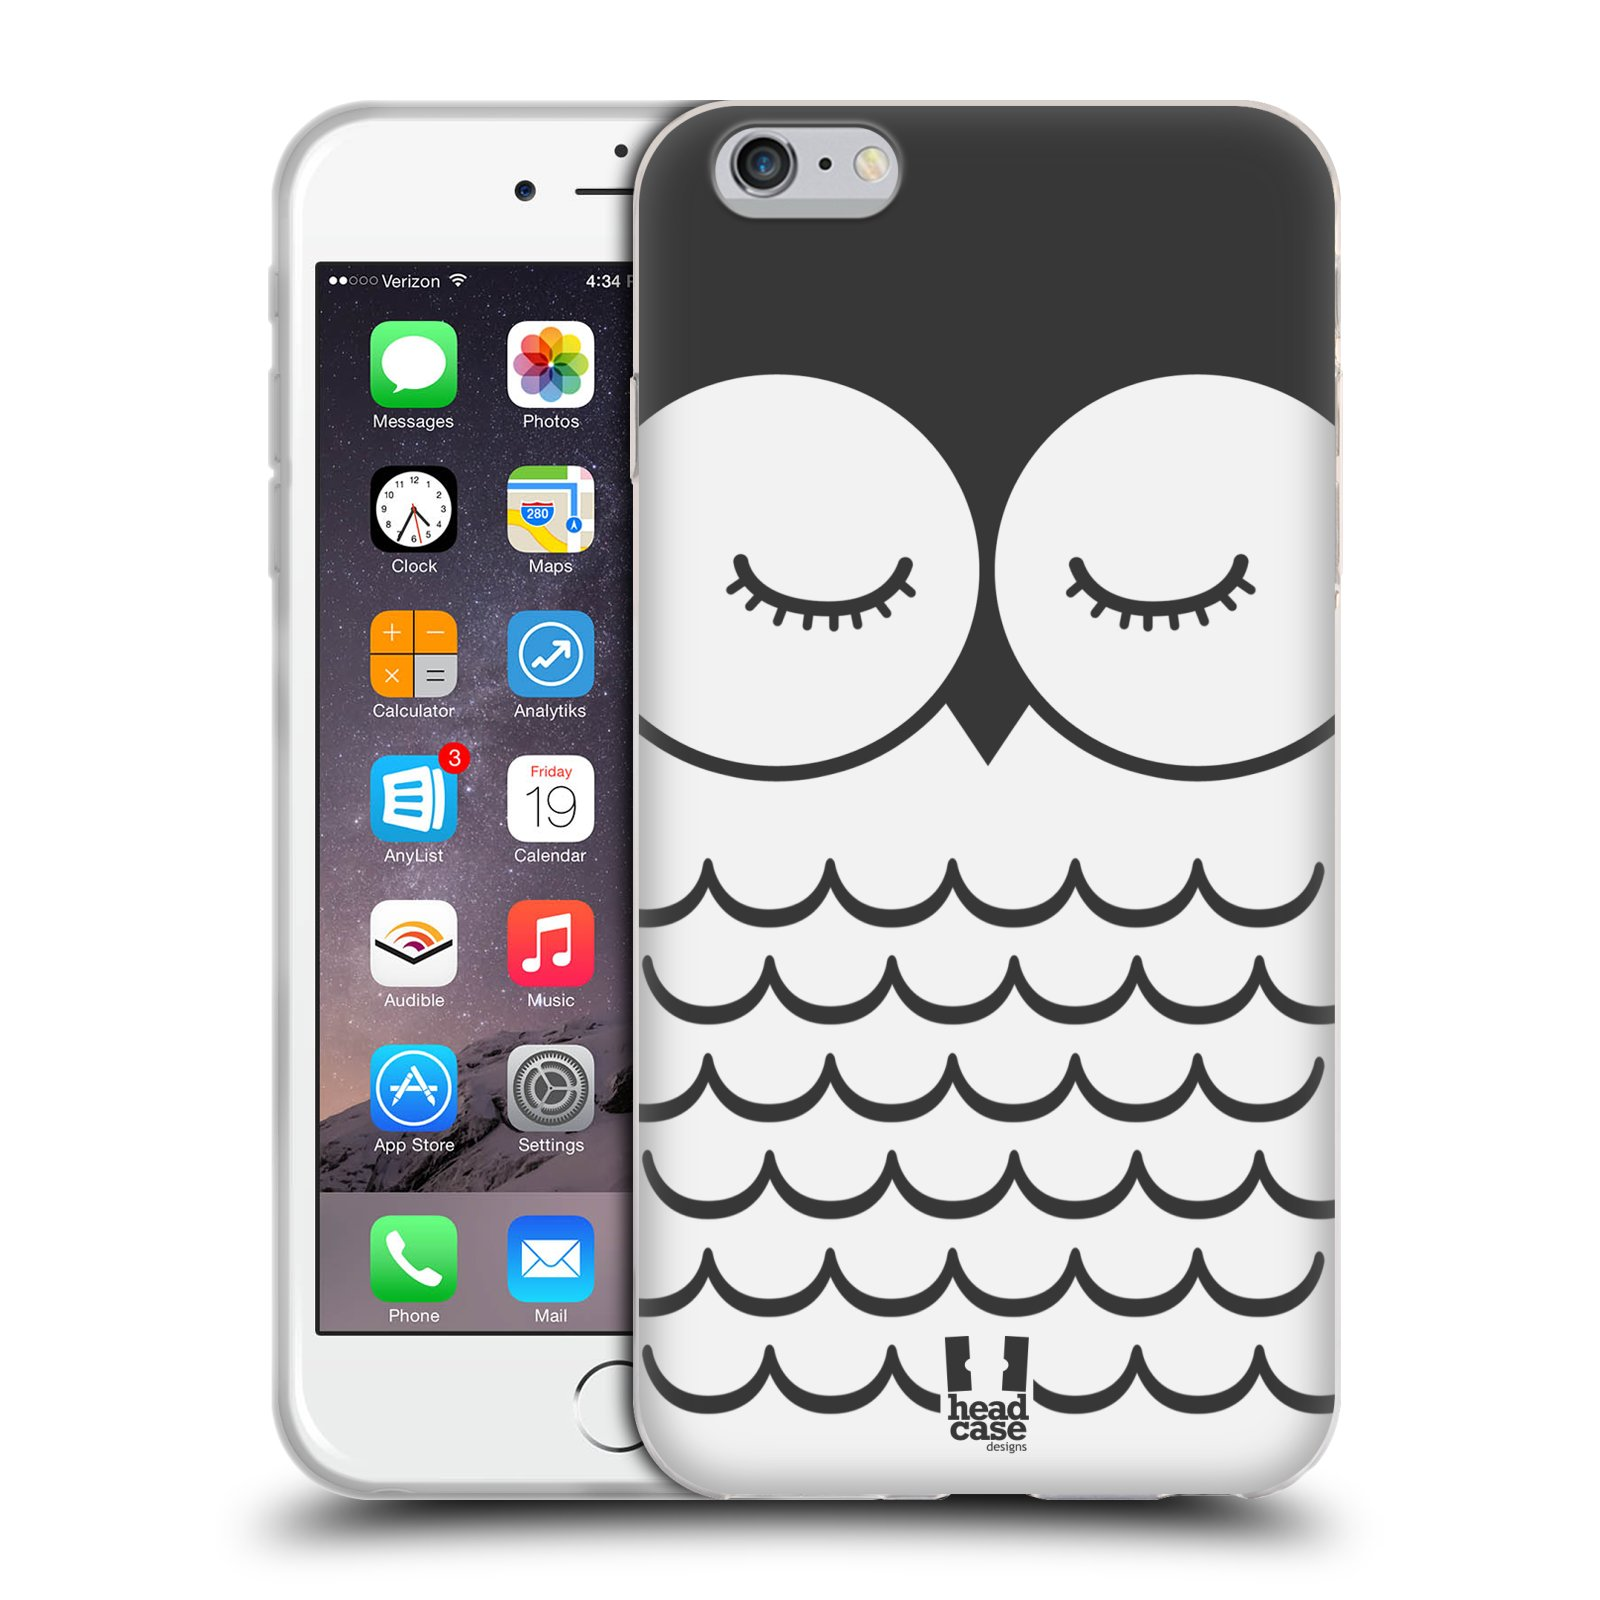 HEAD CASE silikonový obal na mobil Apple Iphone 6 PLUS/ 6S PLUS vzor Cartoon Karikatura kreslená zvířátka sova